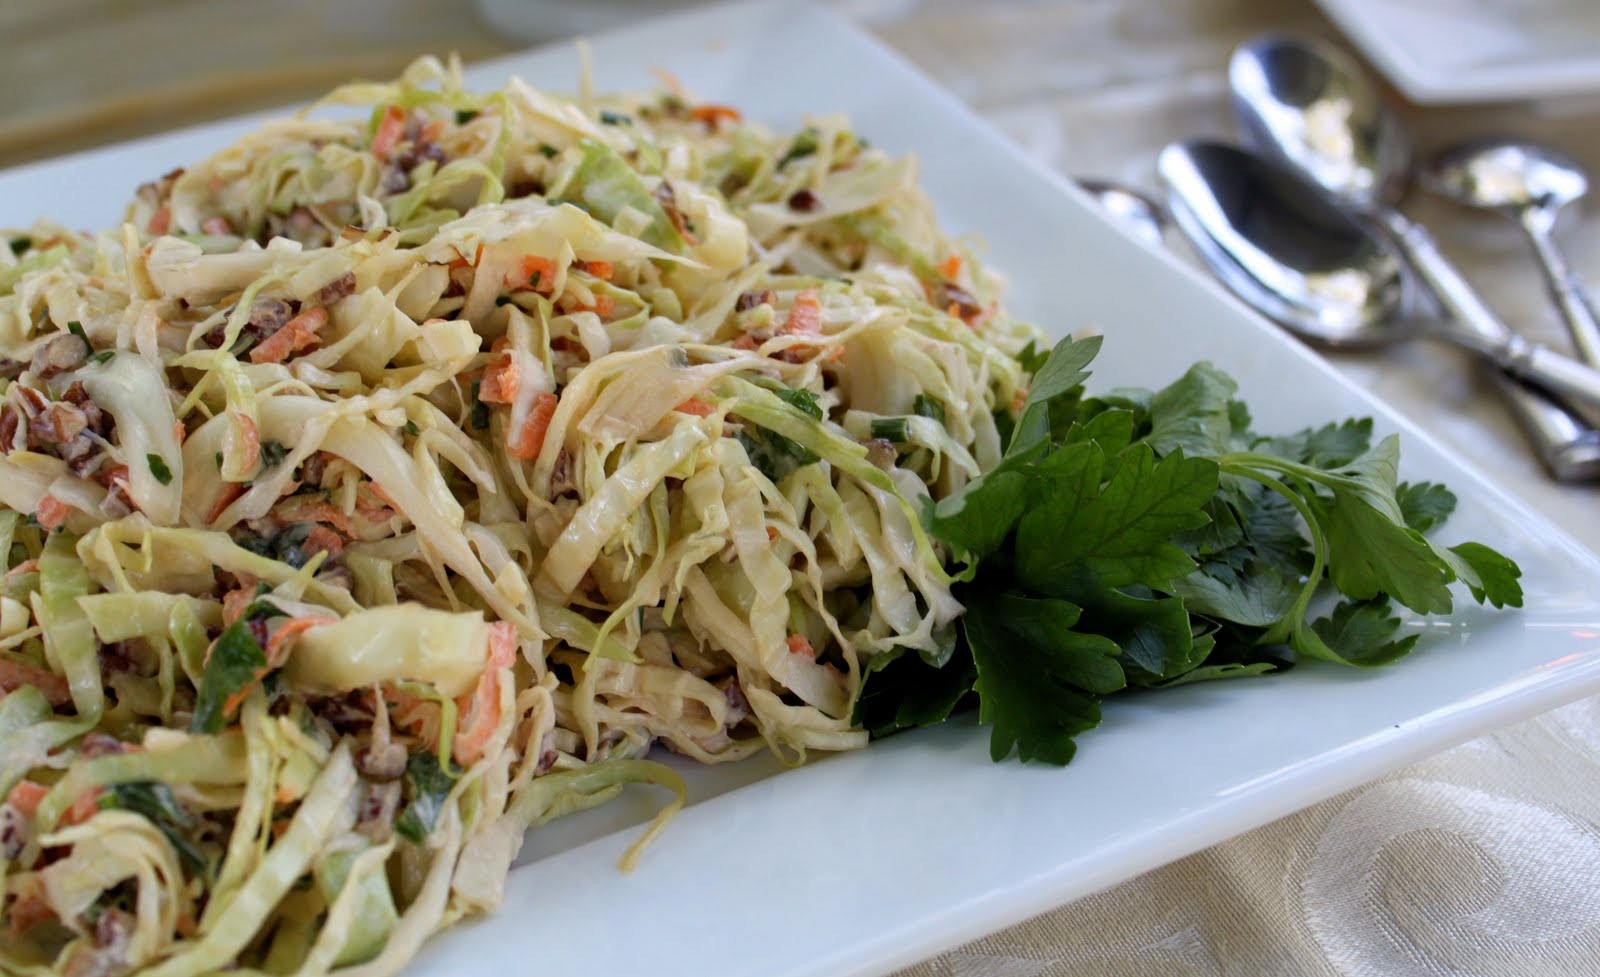 Spicy Coleslaw Recipes — Dishmaps